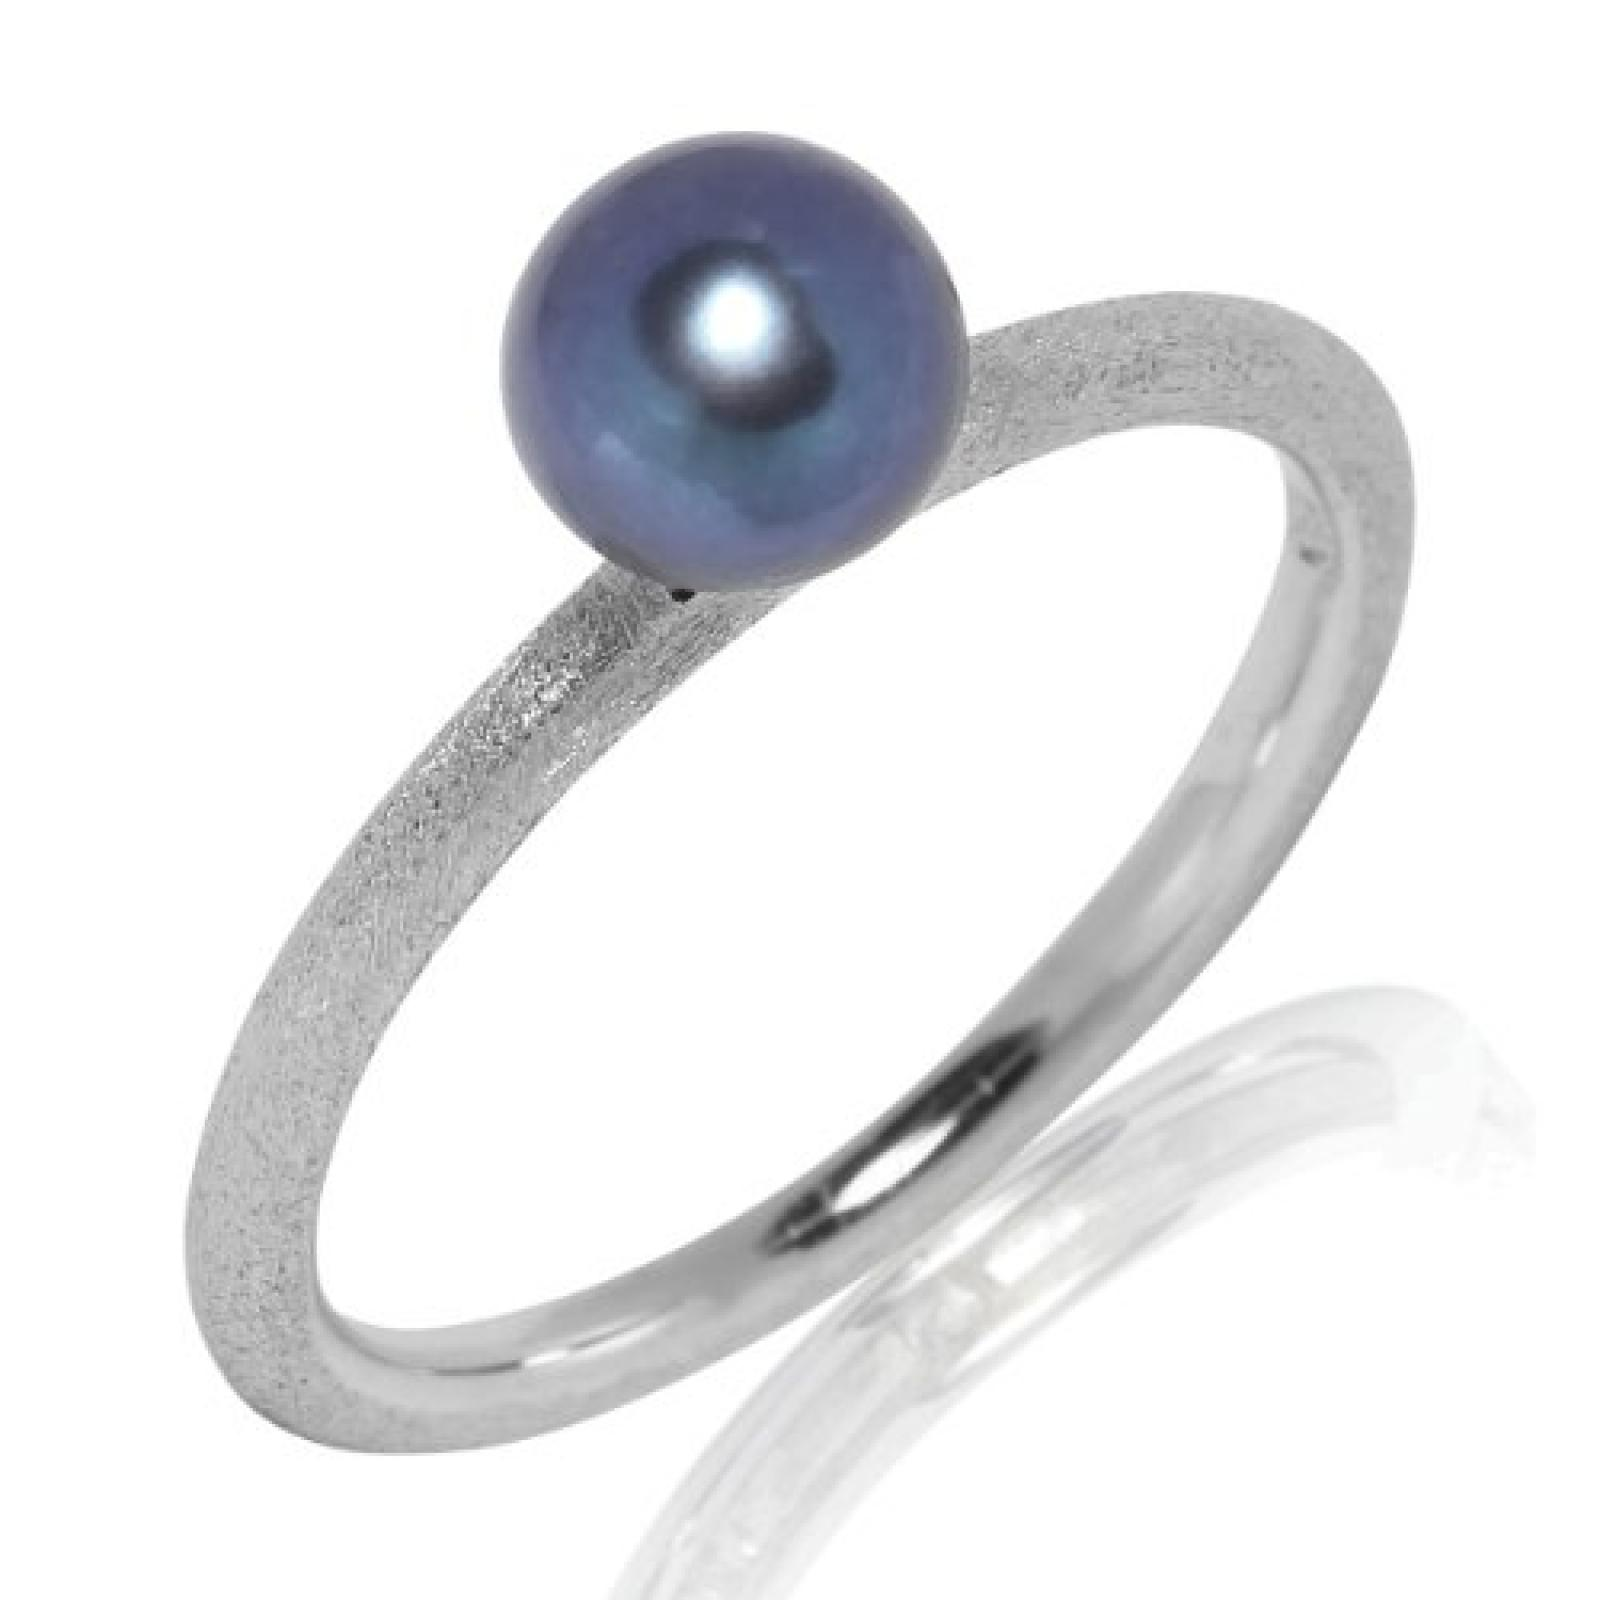 Valero Pearls Silver Collection Damen-Ring Hochwertige Süßwasser-Zuchtperlen in ca.  6 mm Button blau 925 Sterling Silber     Ringgröße 50 60201740